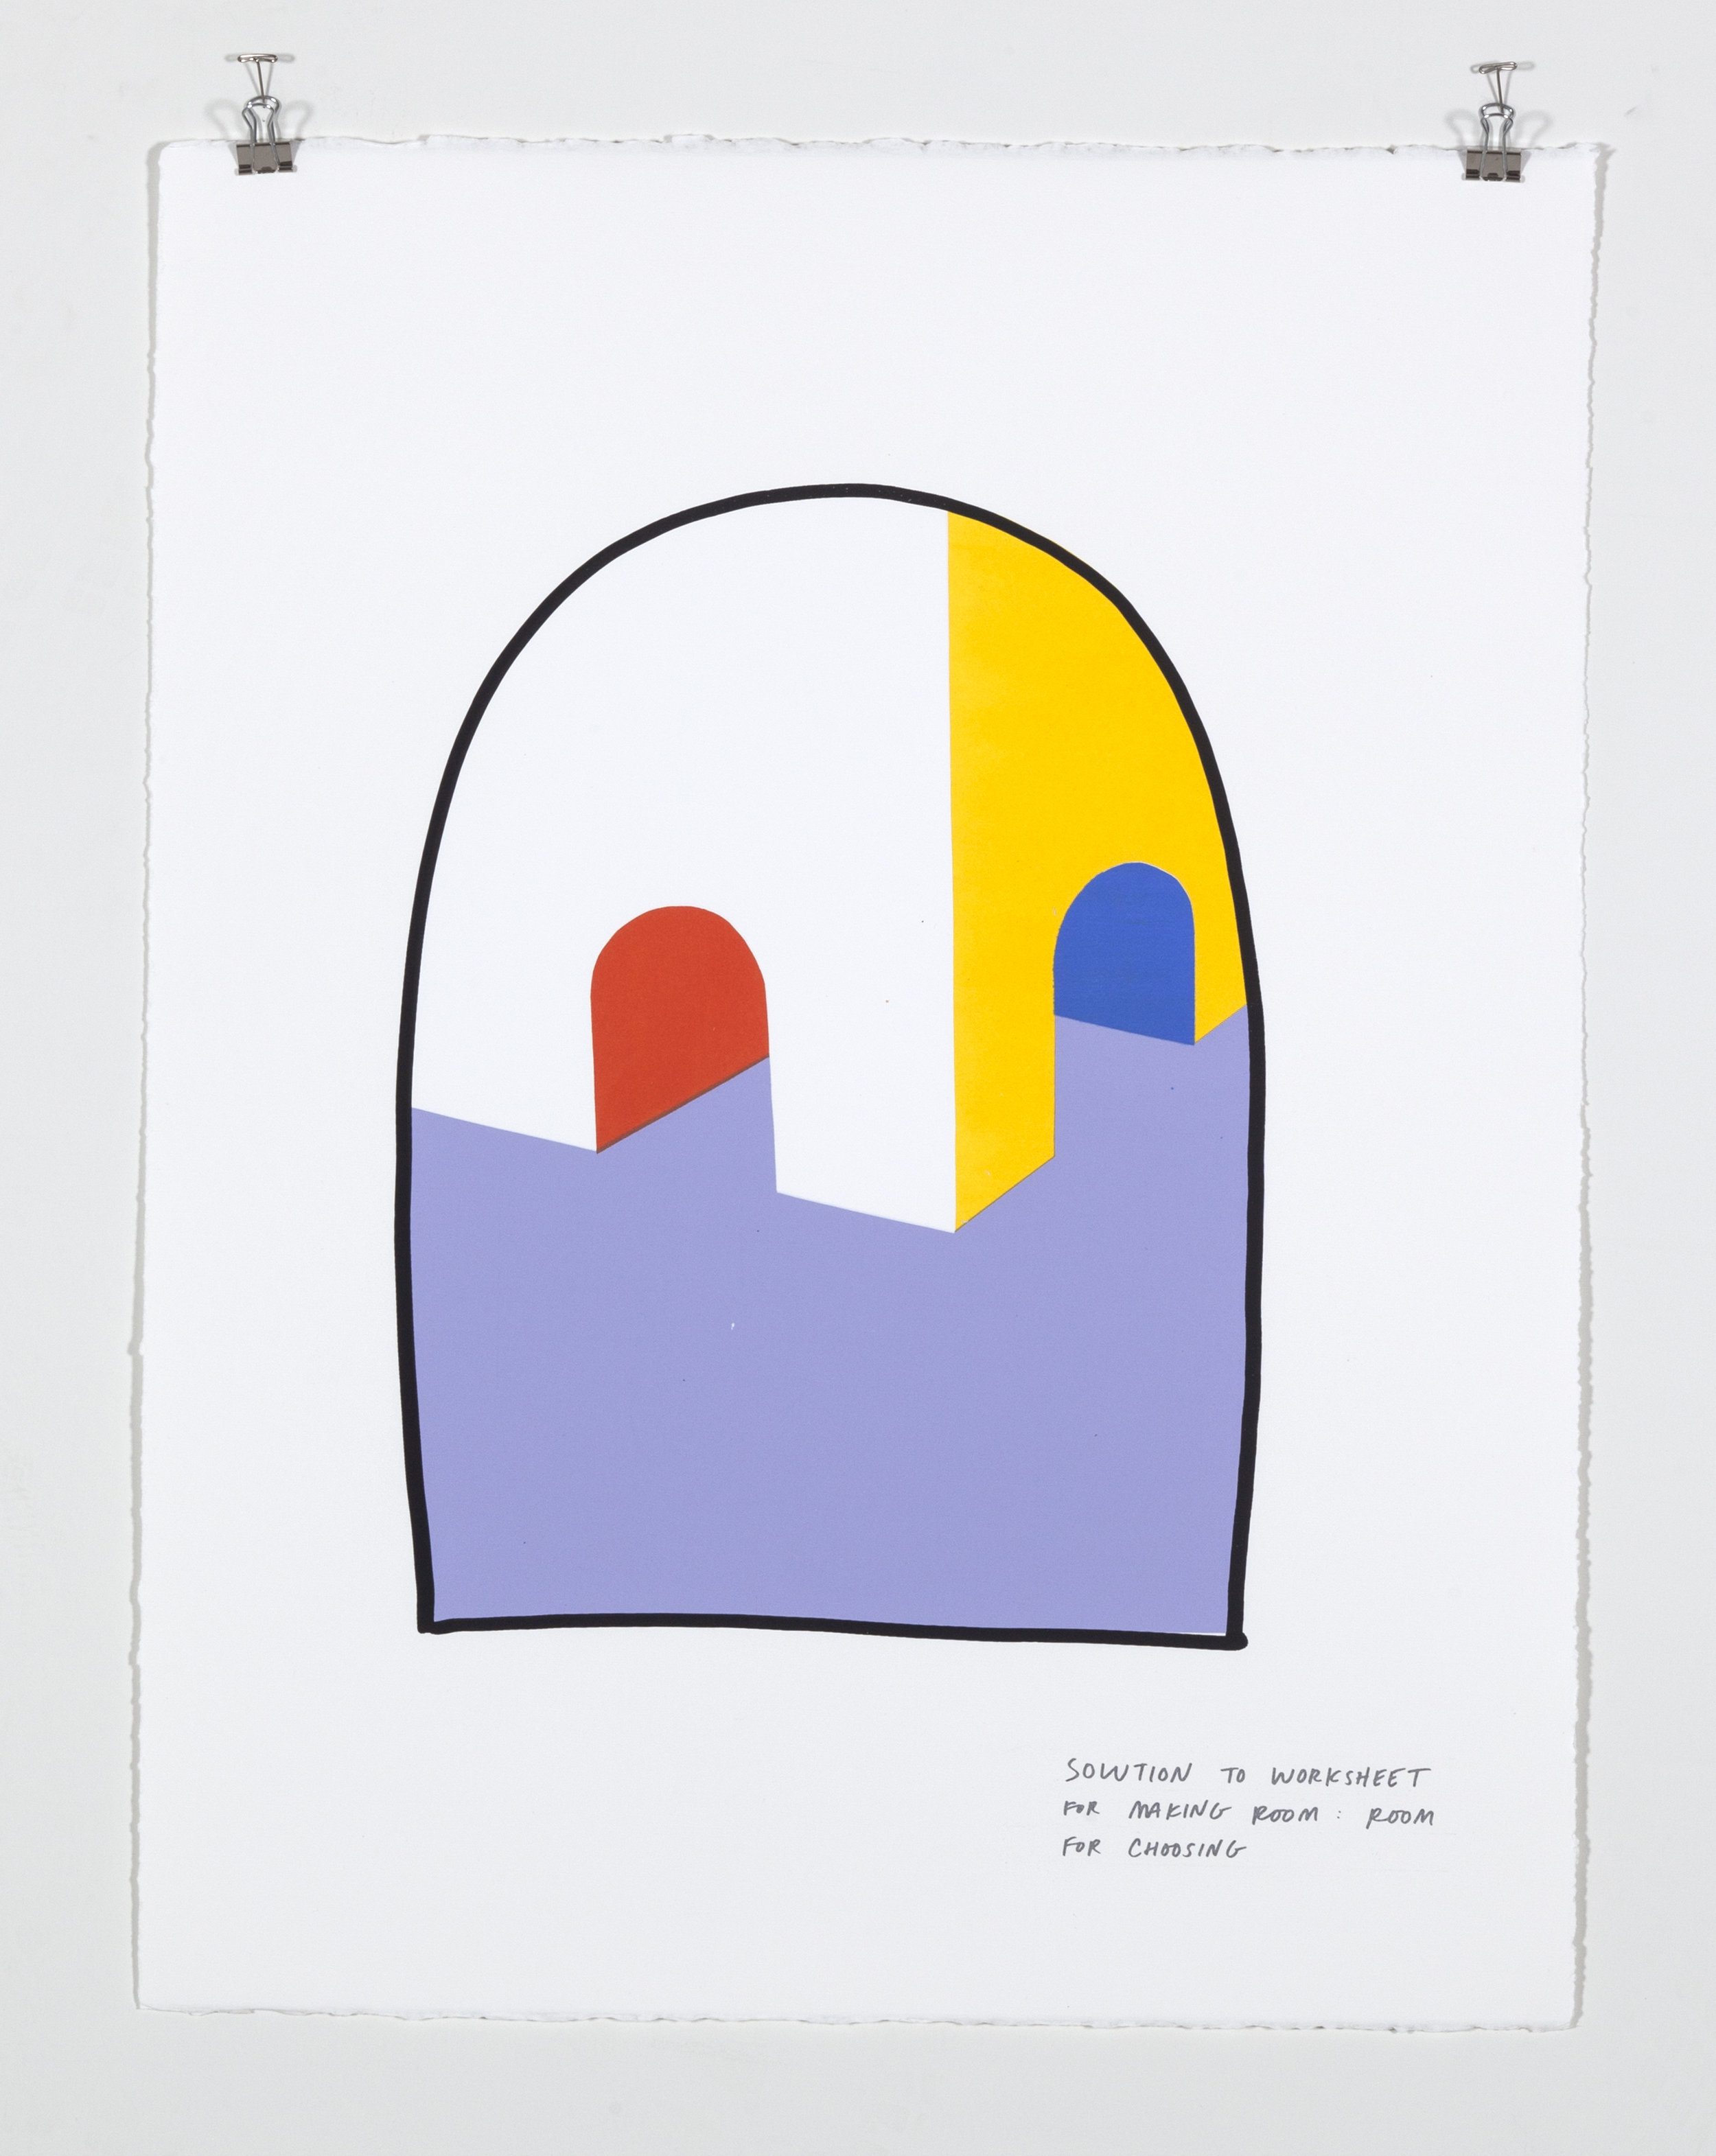 Solution to Worksheet for Making Room: Room for Choosing,  2018  Five color silkscreen print on paper 19 7/8 x 25 7/8 inches